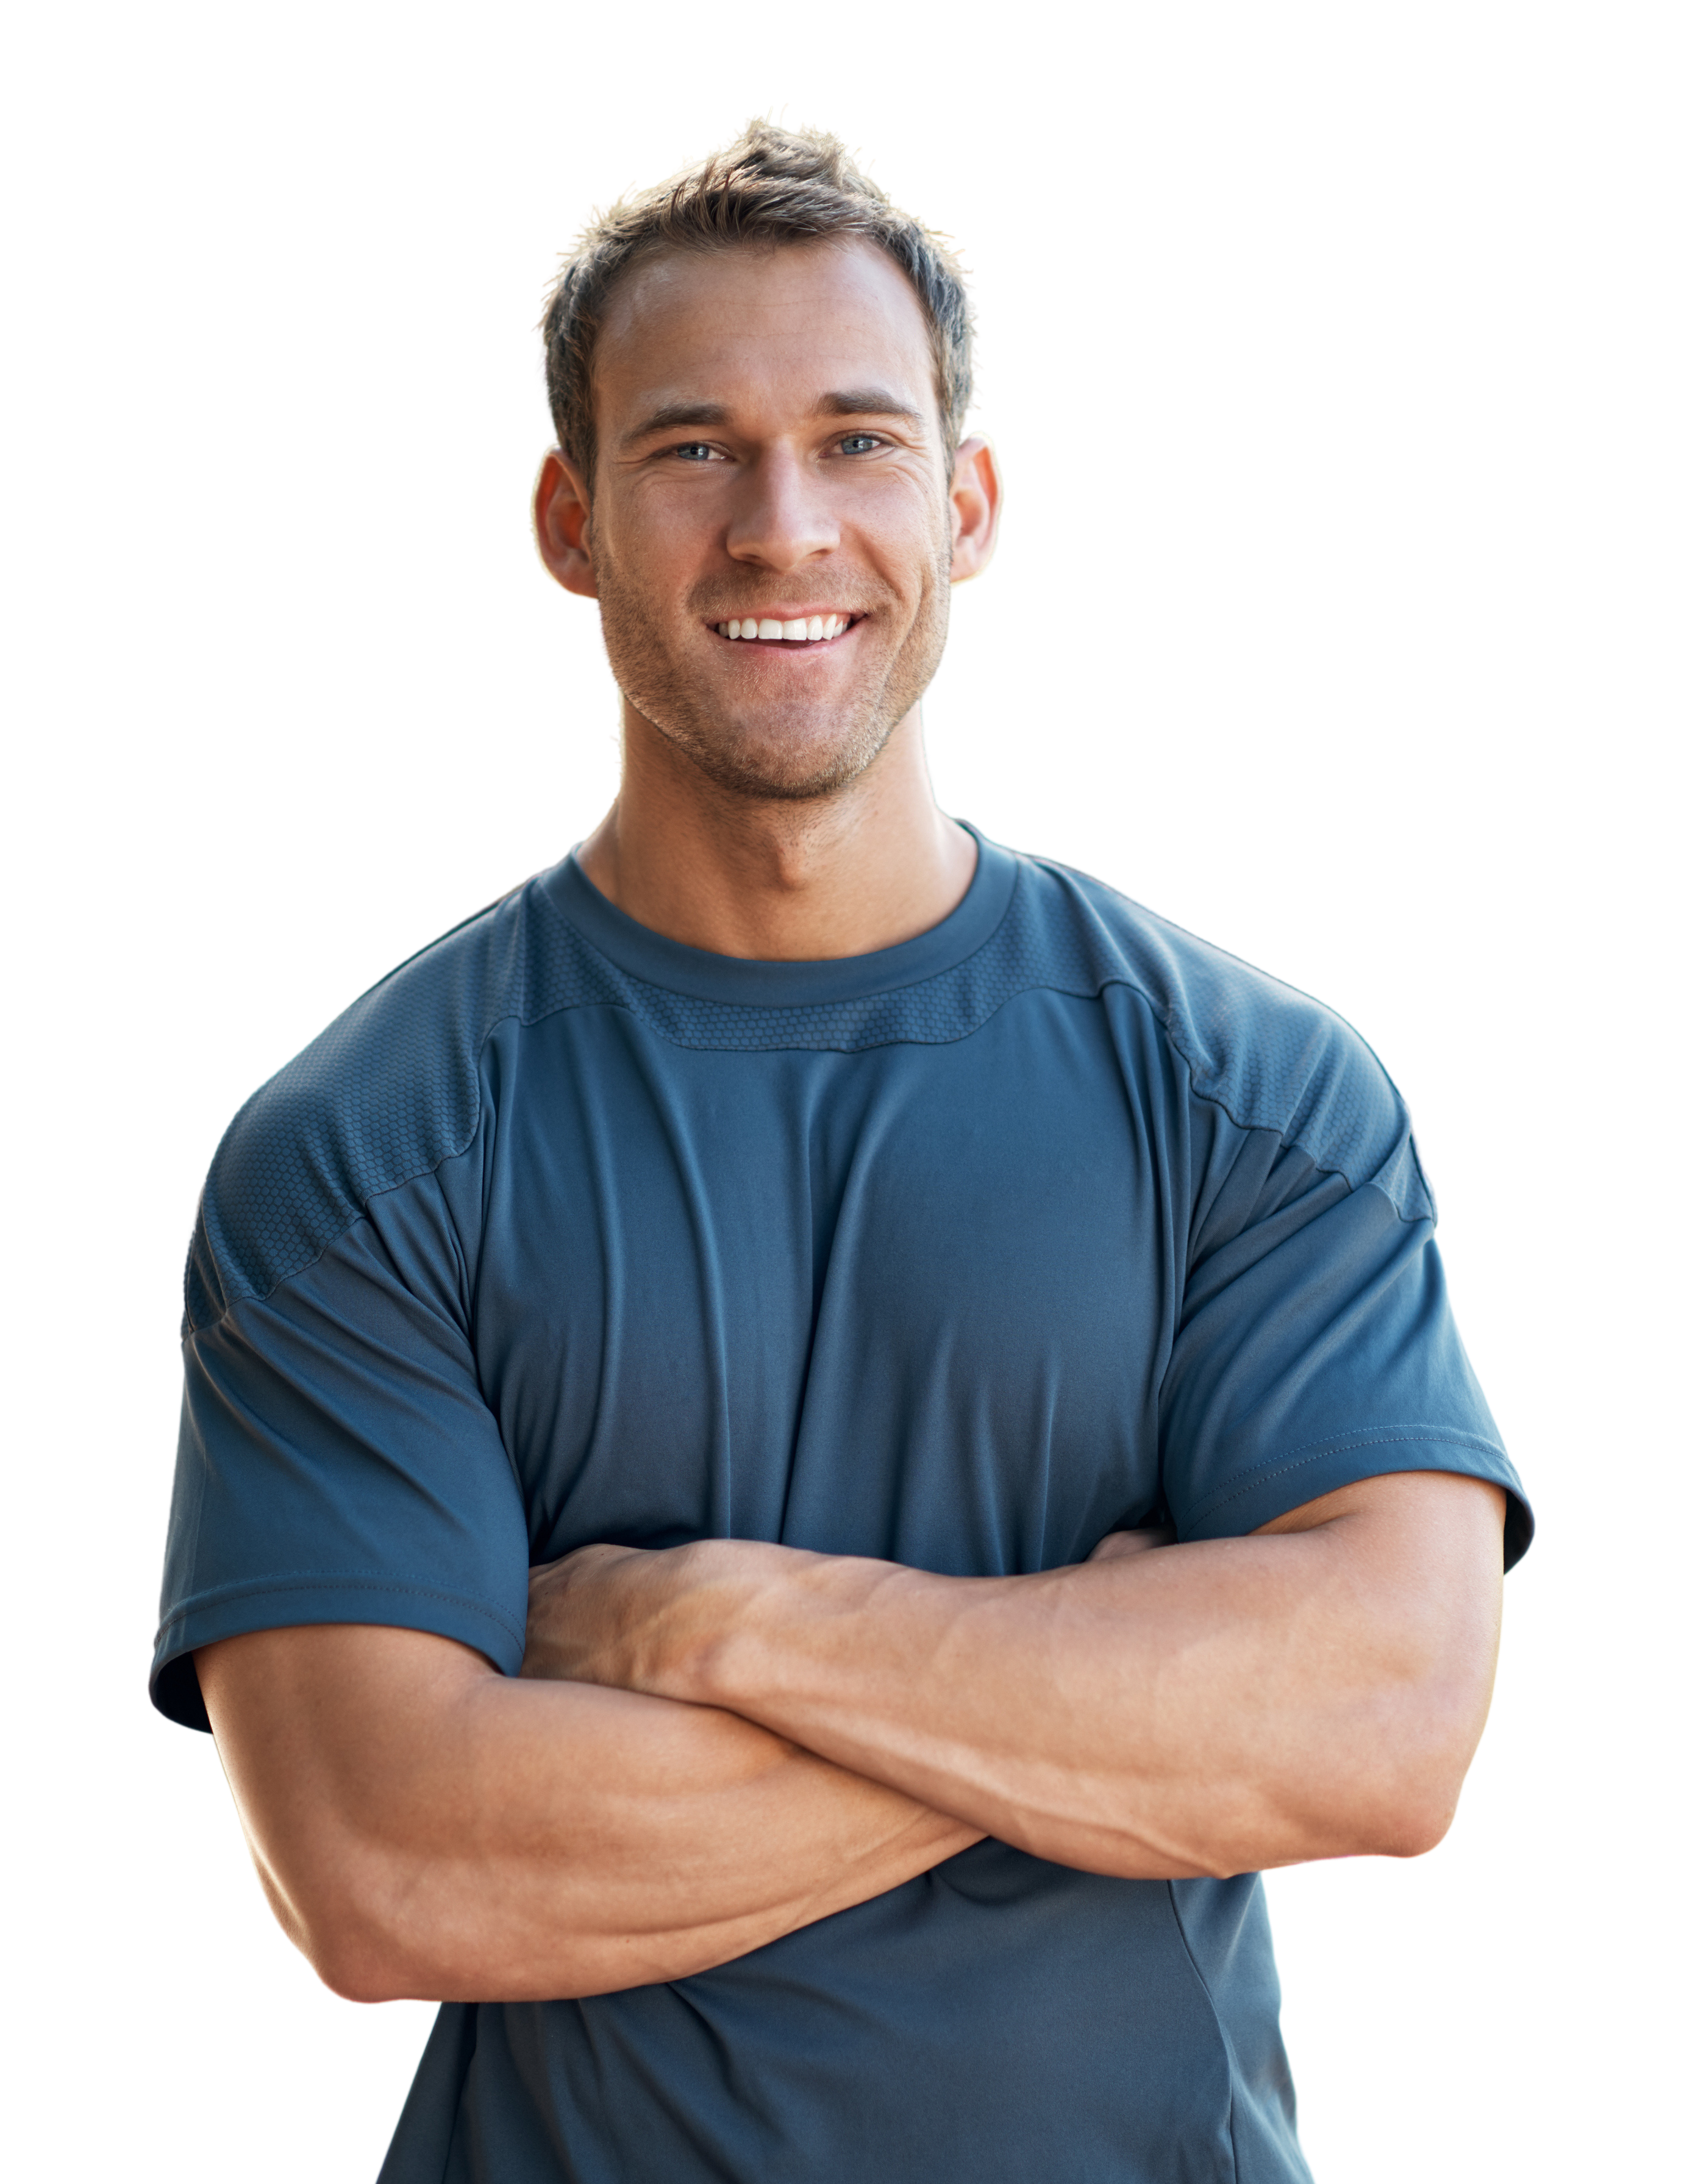 man working out smile ghf